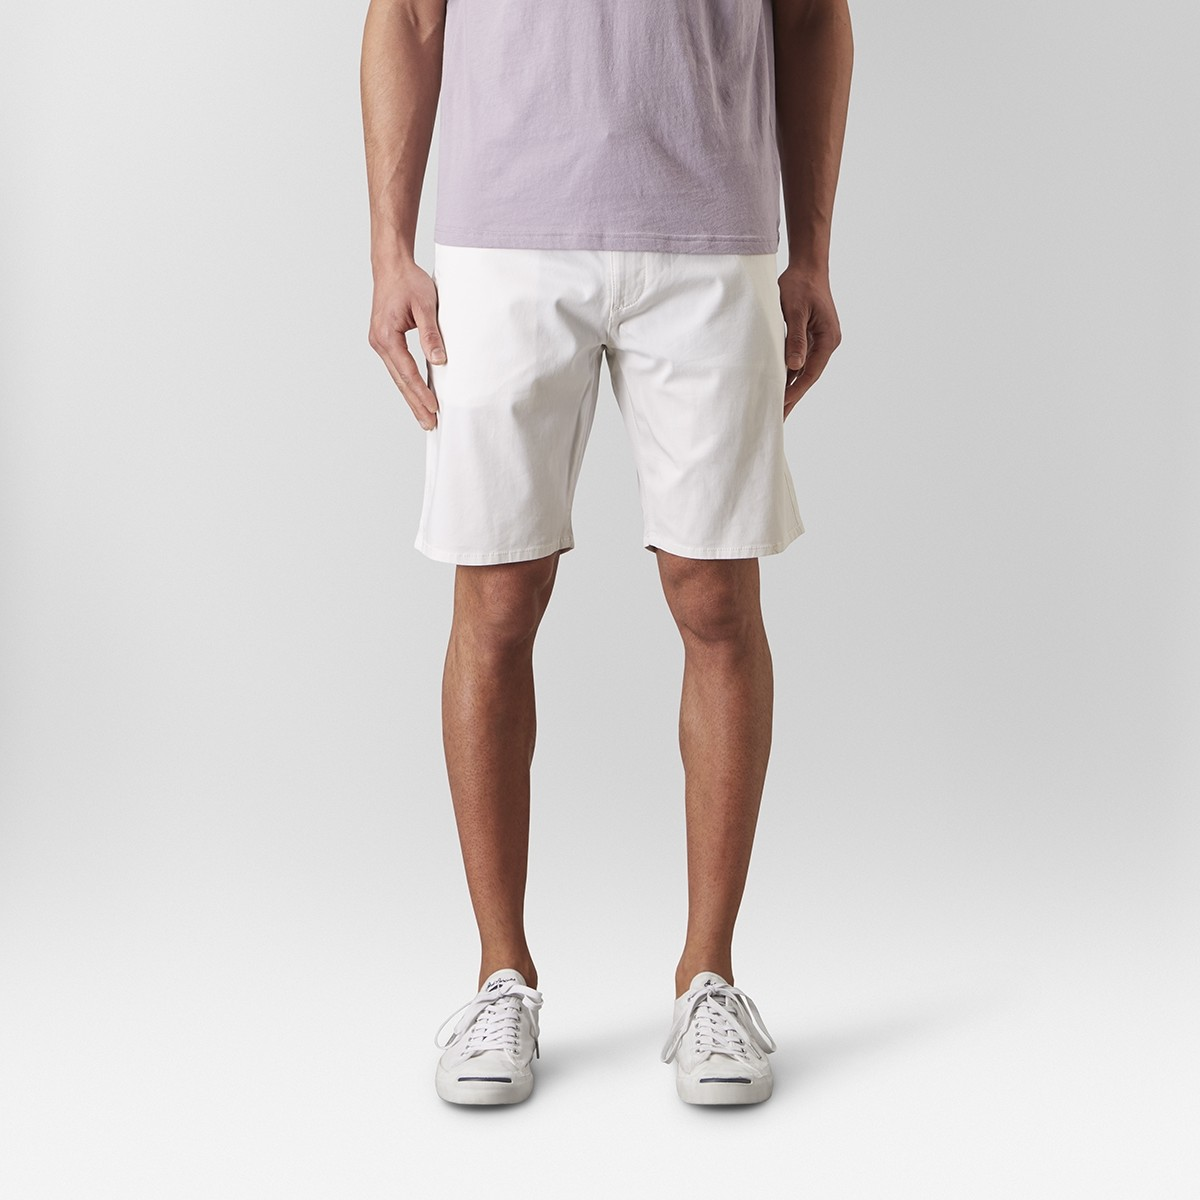 Bowery Chinos Short Vit   East West   Brothers.se